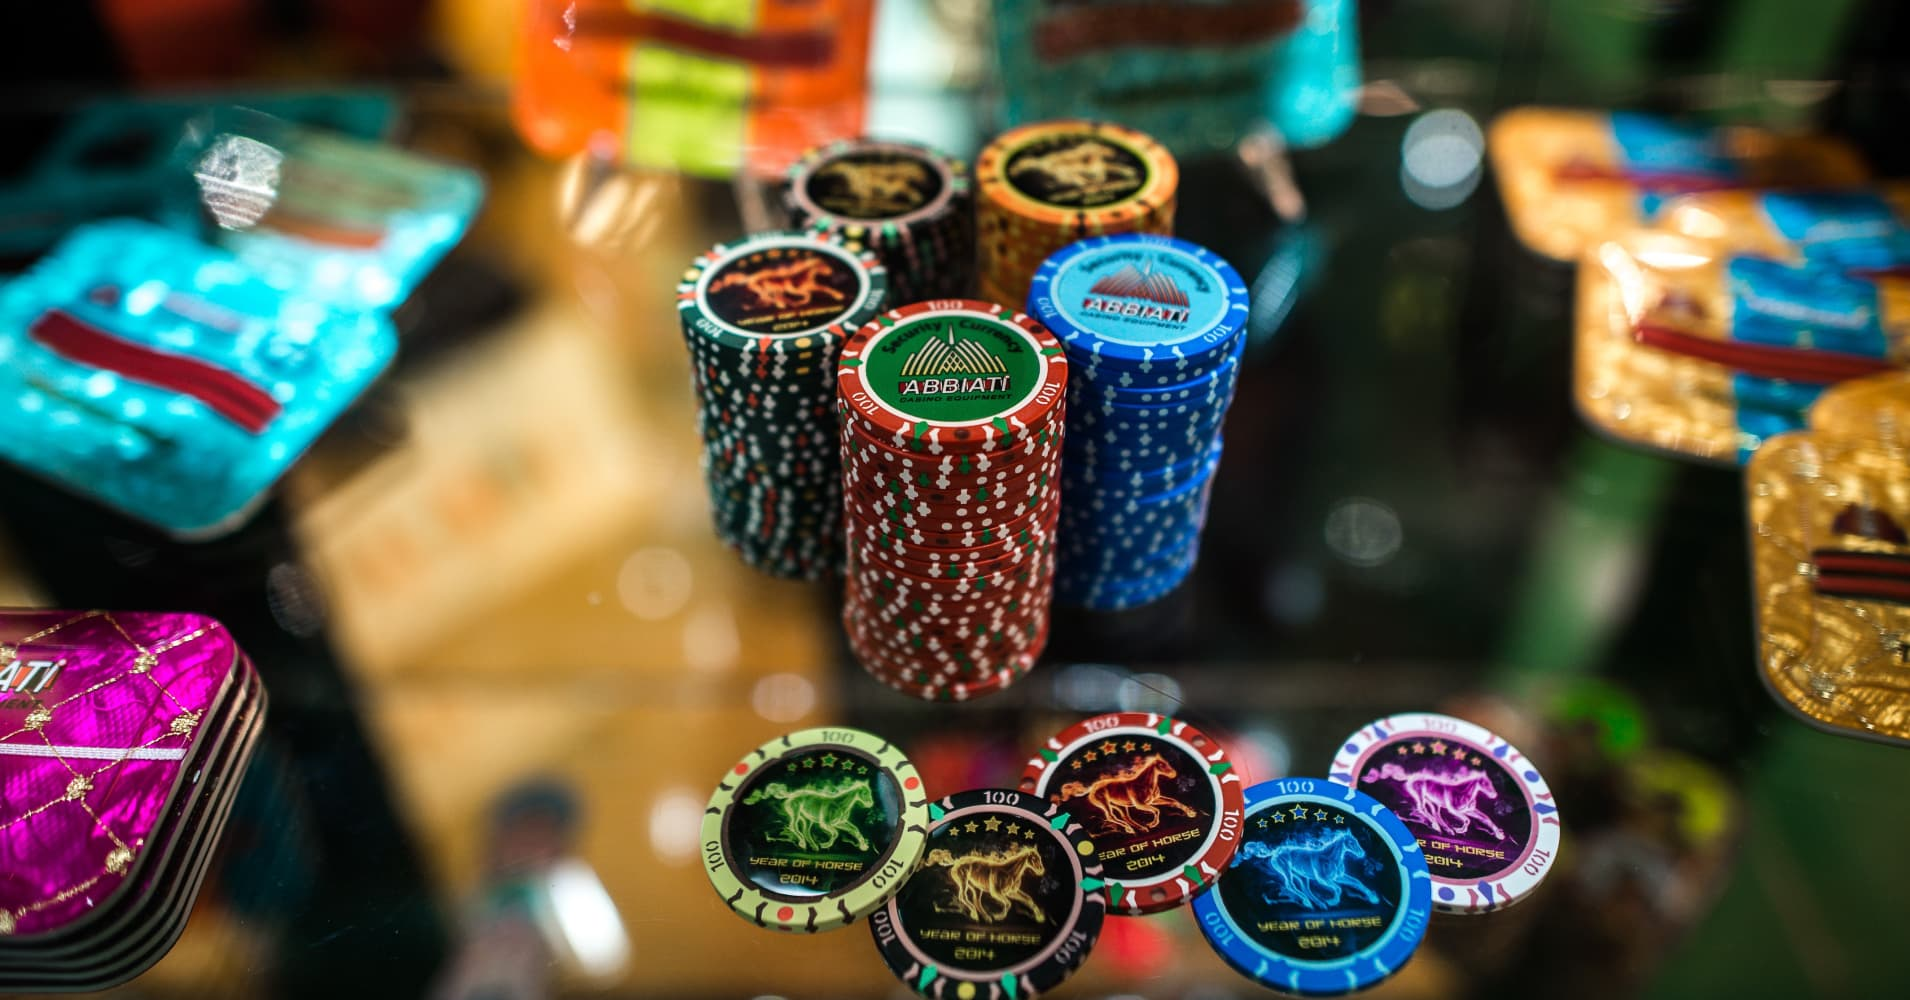 Macau police hunt for HK$48 million in gambling chips after Wynn casino robbery